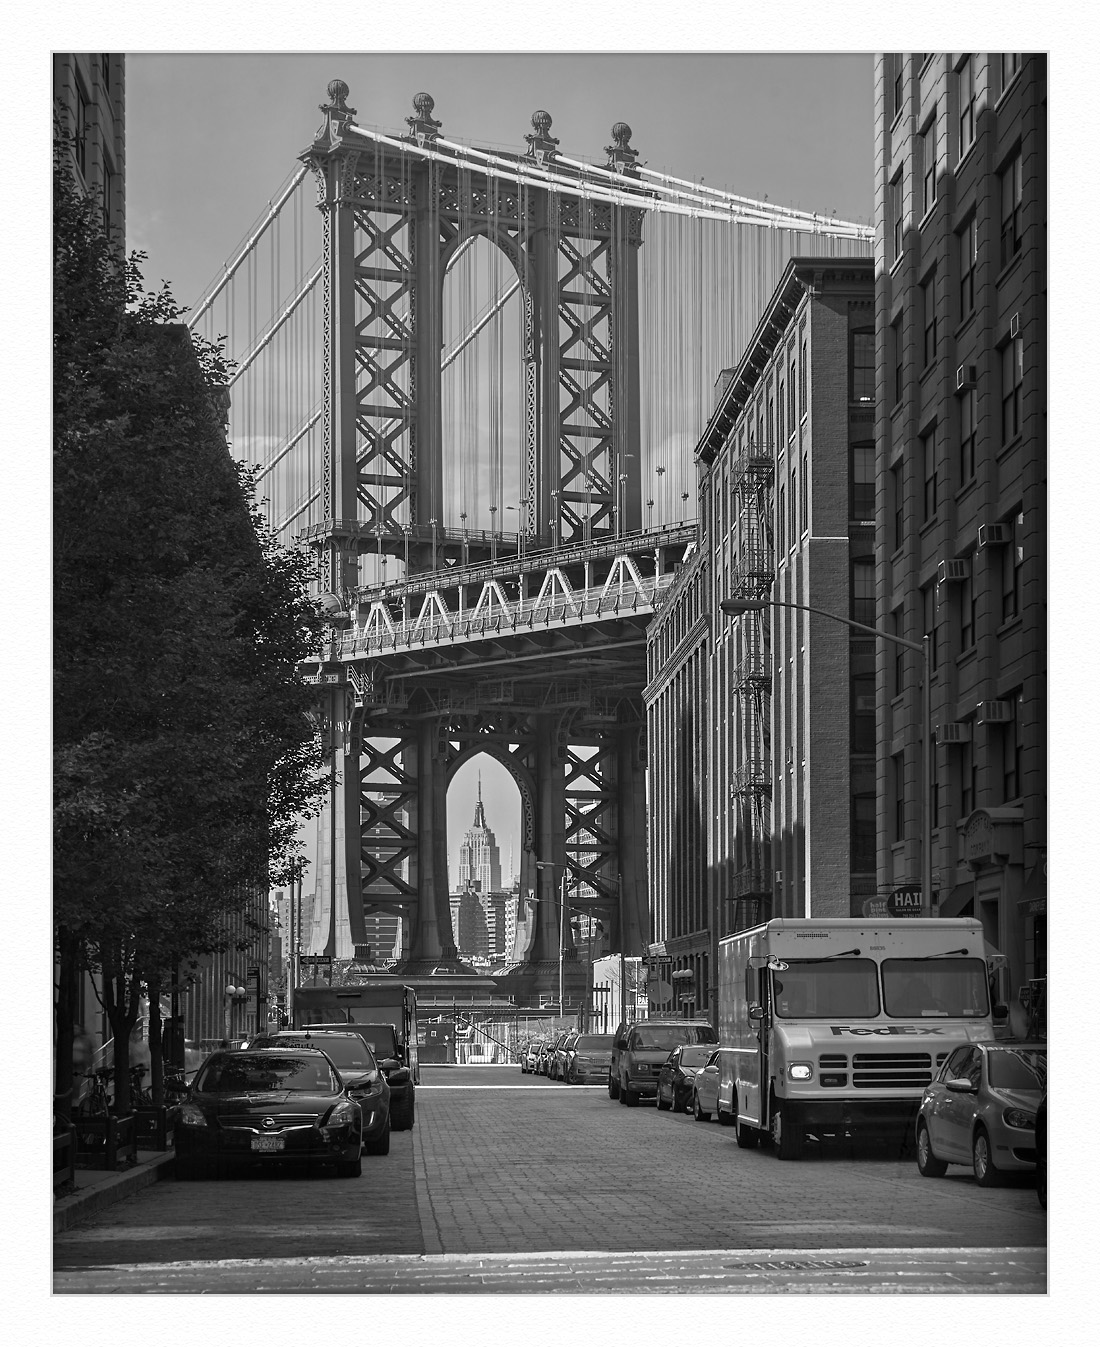 dumbo washington st 1k by GrahamWelland in GrahamWelland